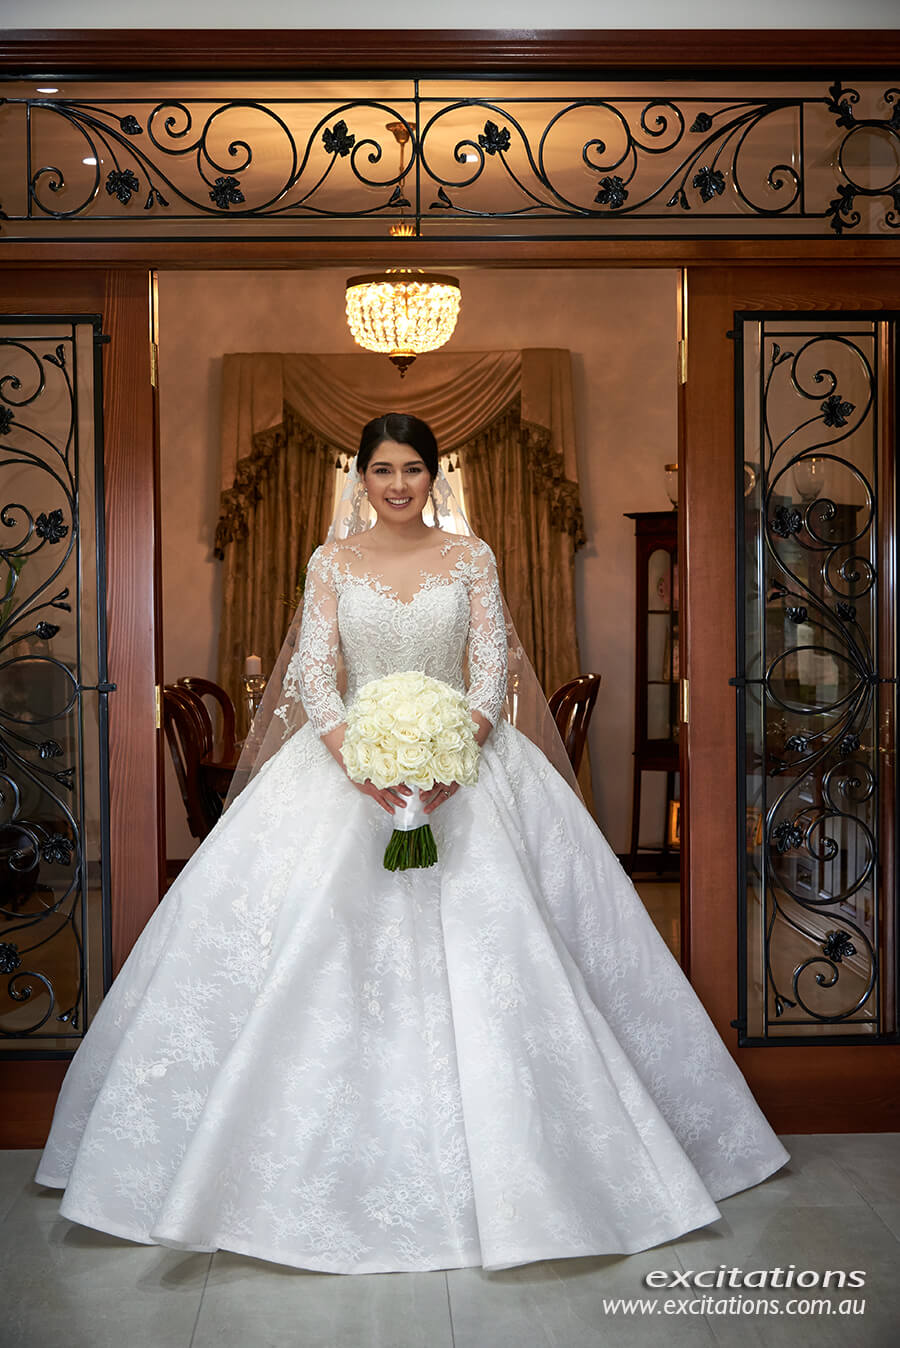 Formal full length front on photograph of a beautiful bride wearing a Steven Khalil wedding gown. Photography by Excitations, Mildura wedding photographers.